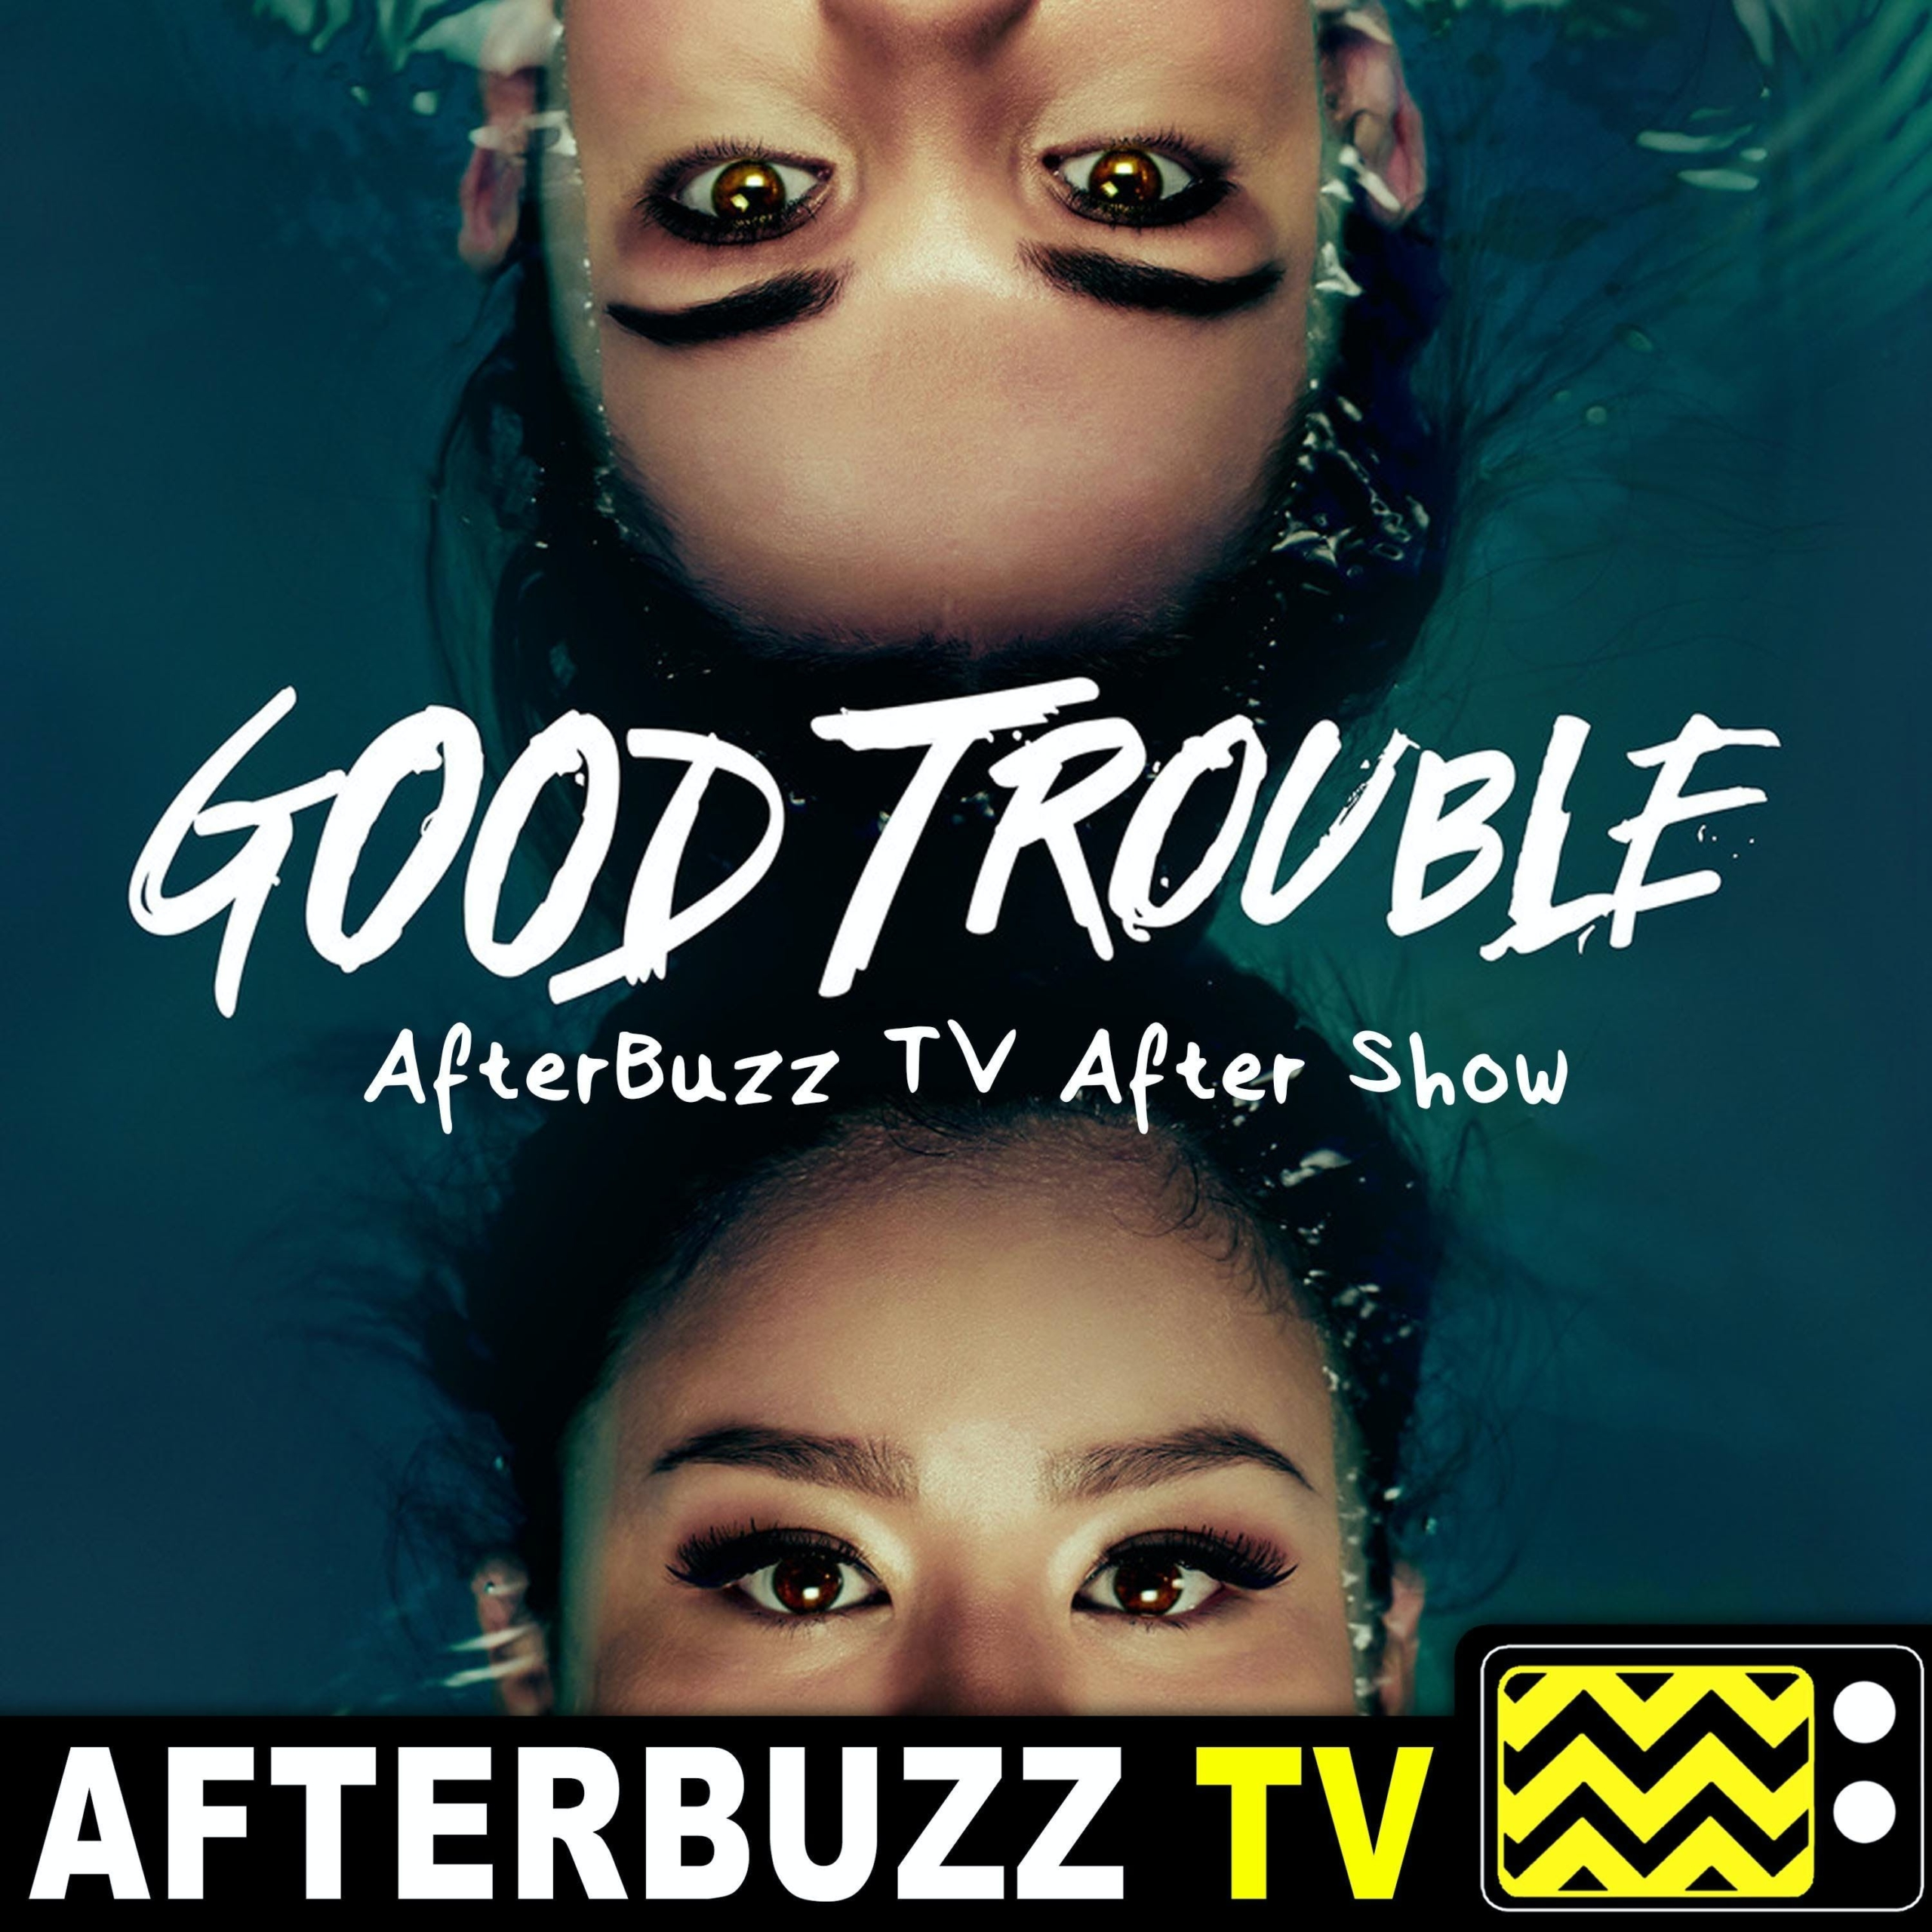 The Good Trouble After Show Podcast